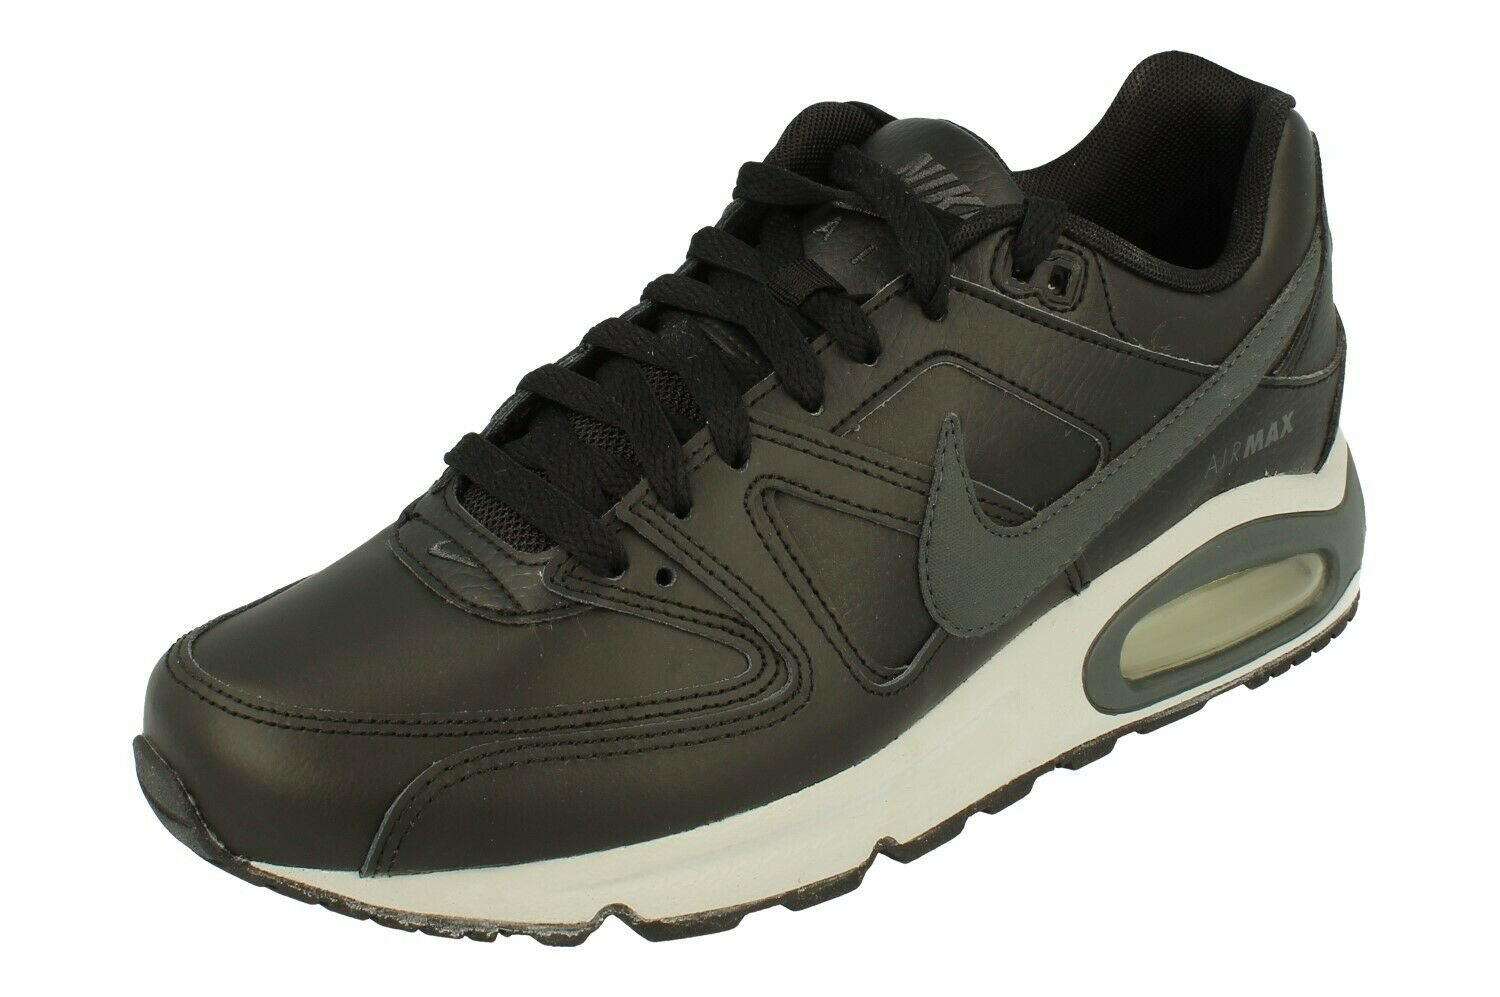 nike air max command leather brown